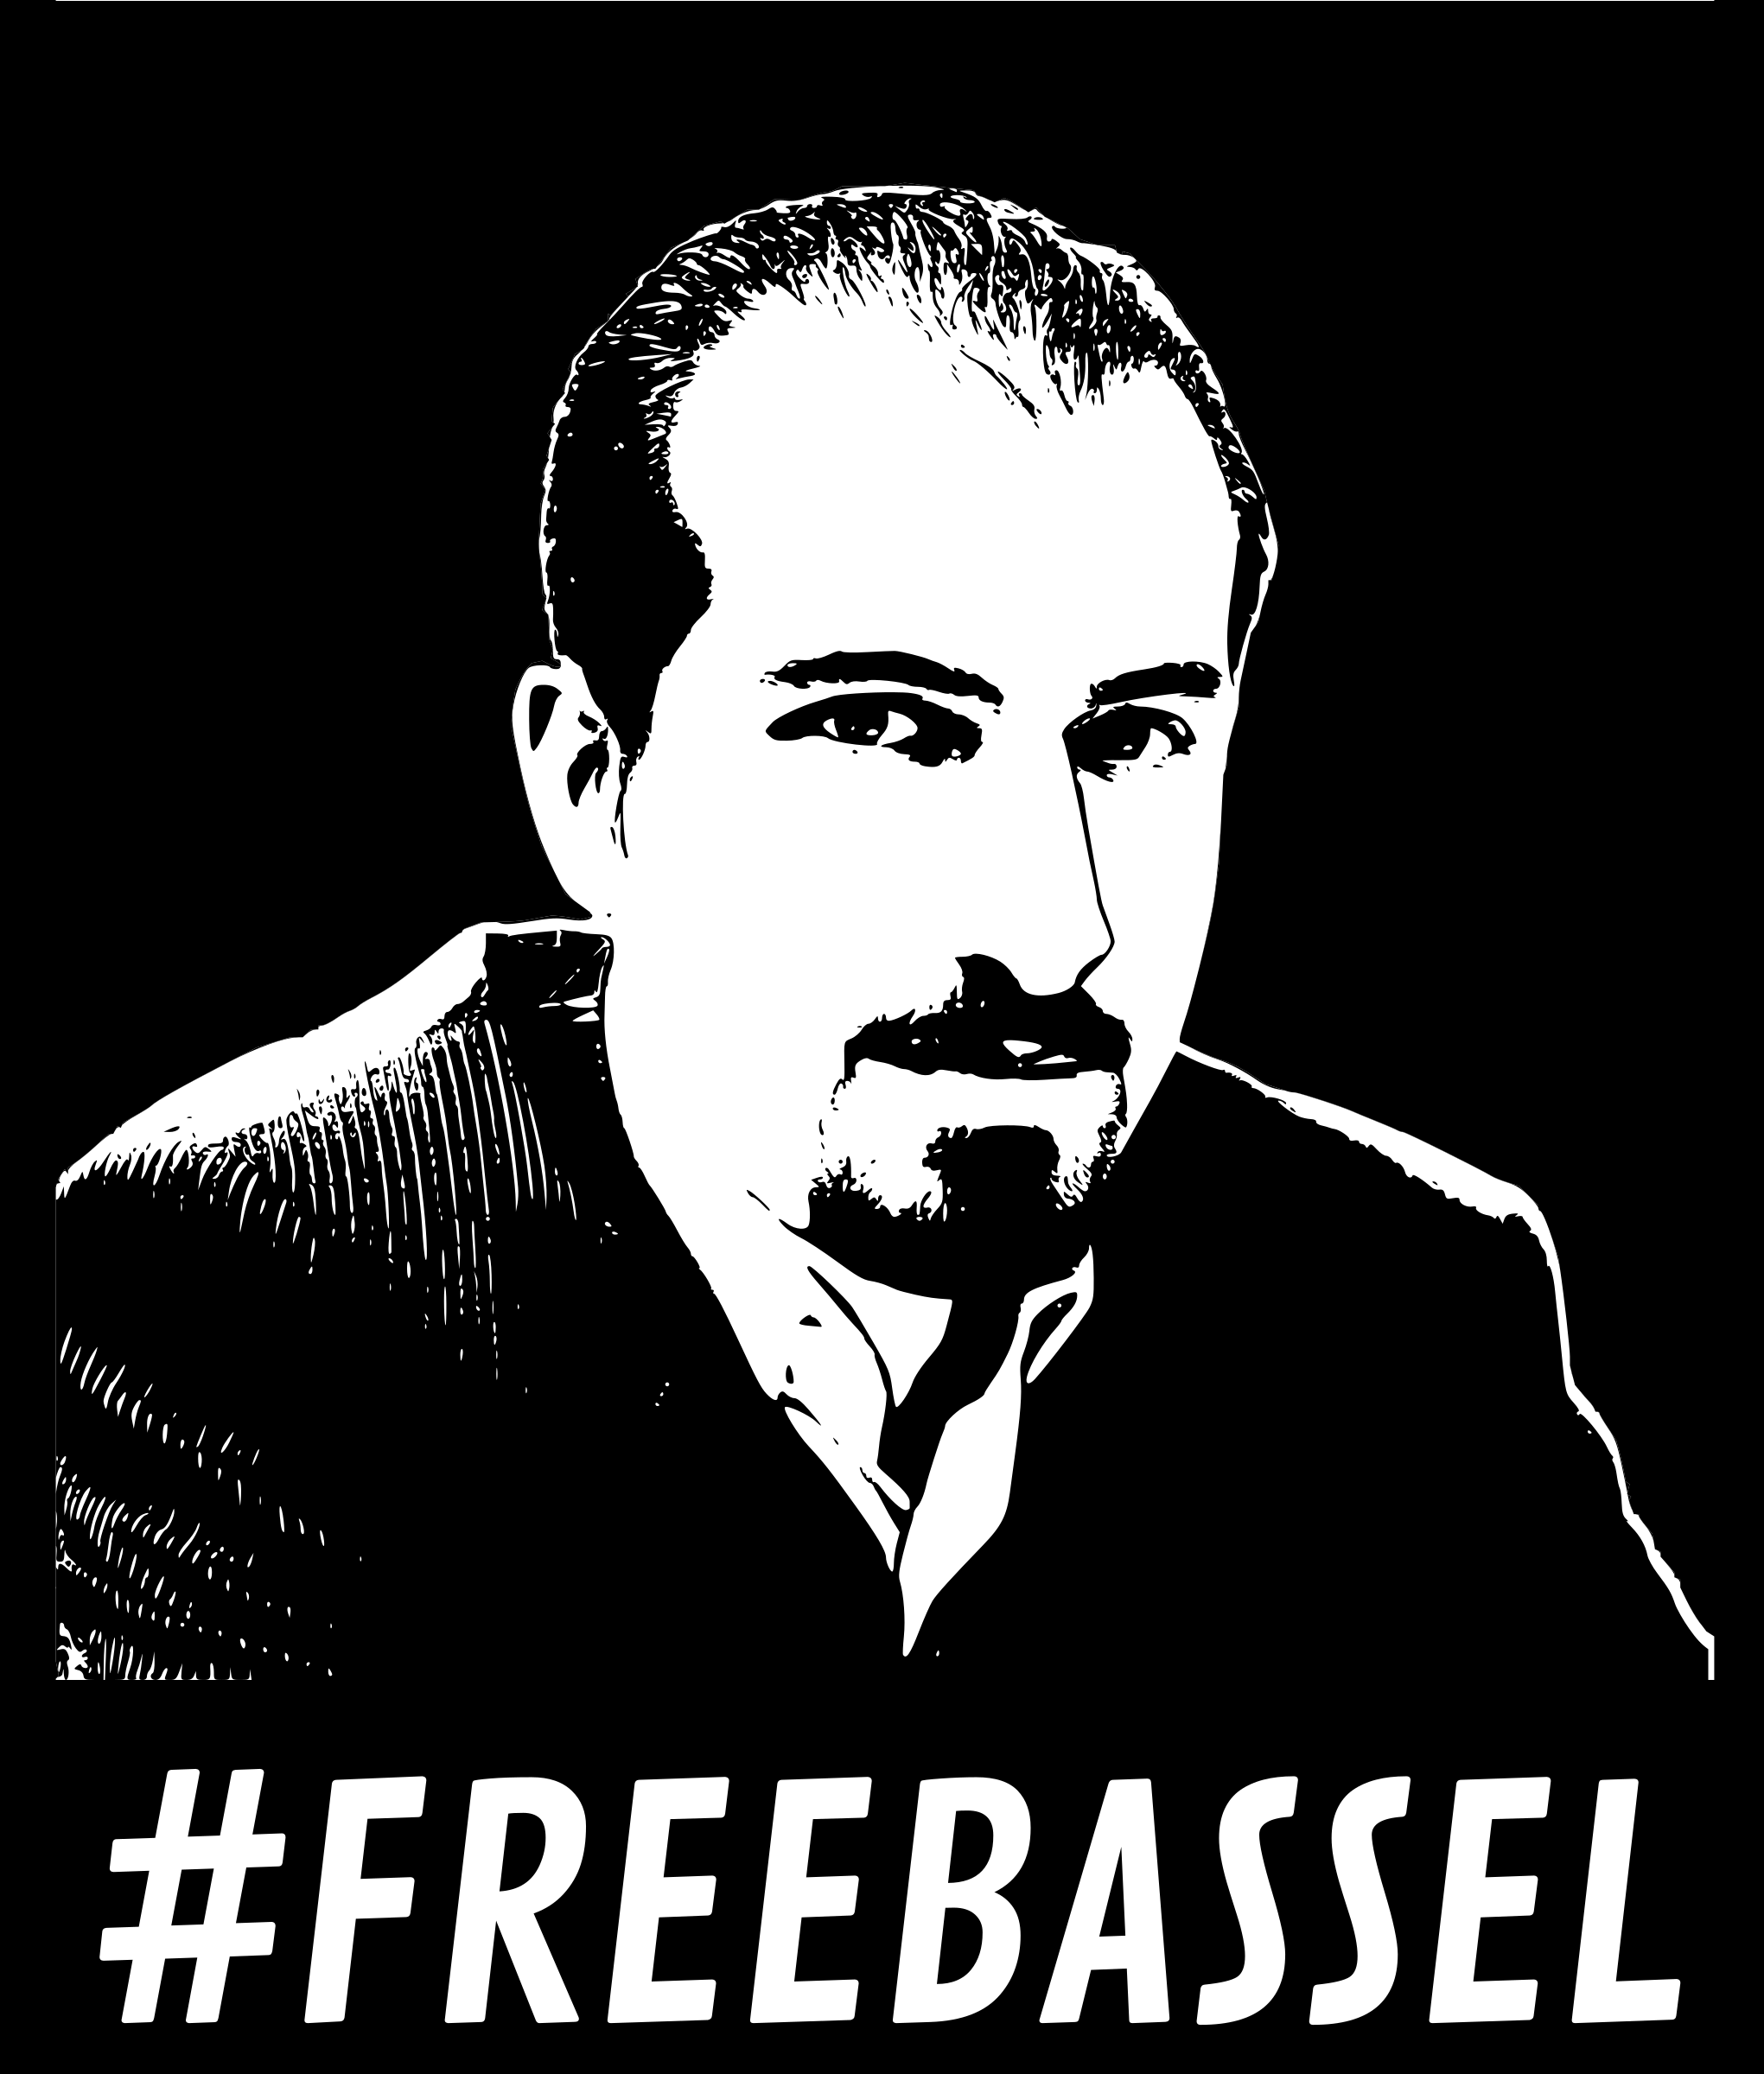 Freebassel black and white poster by dominiquechappard